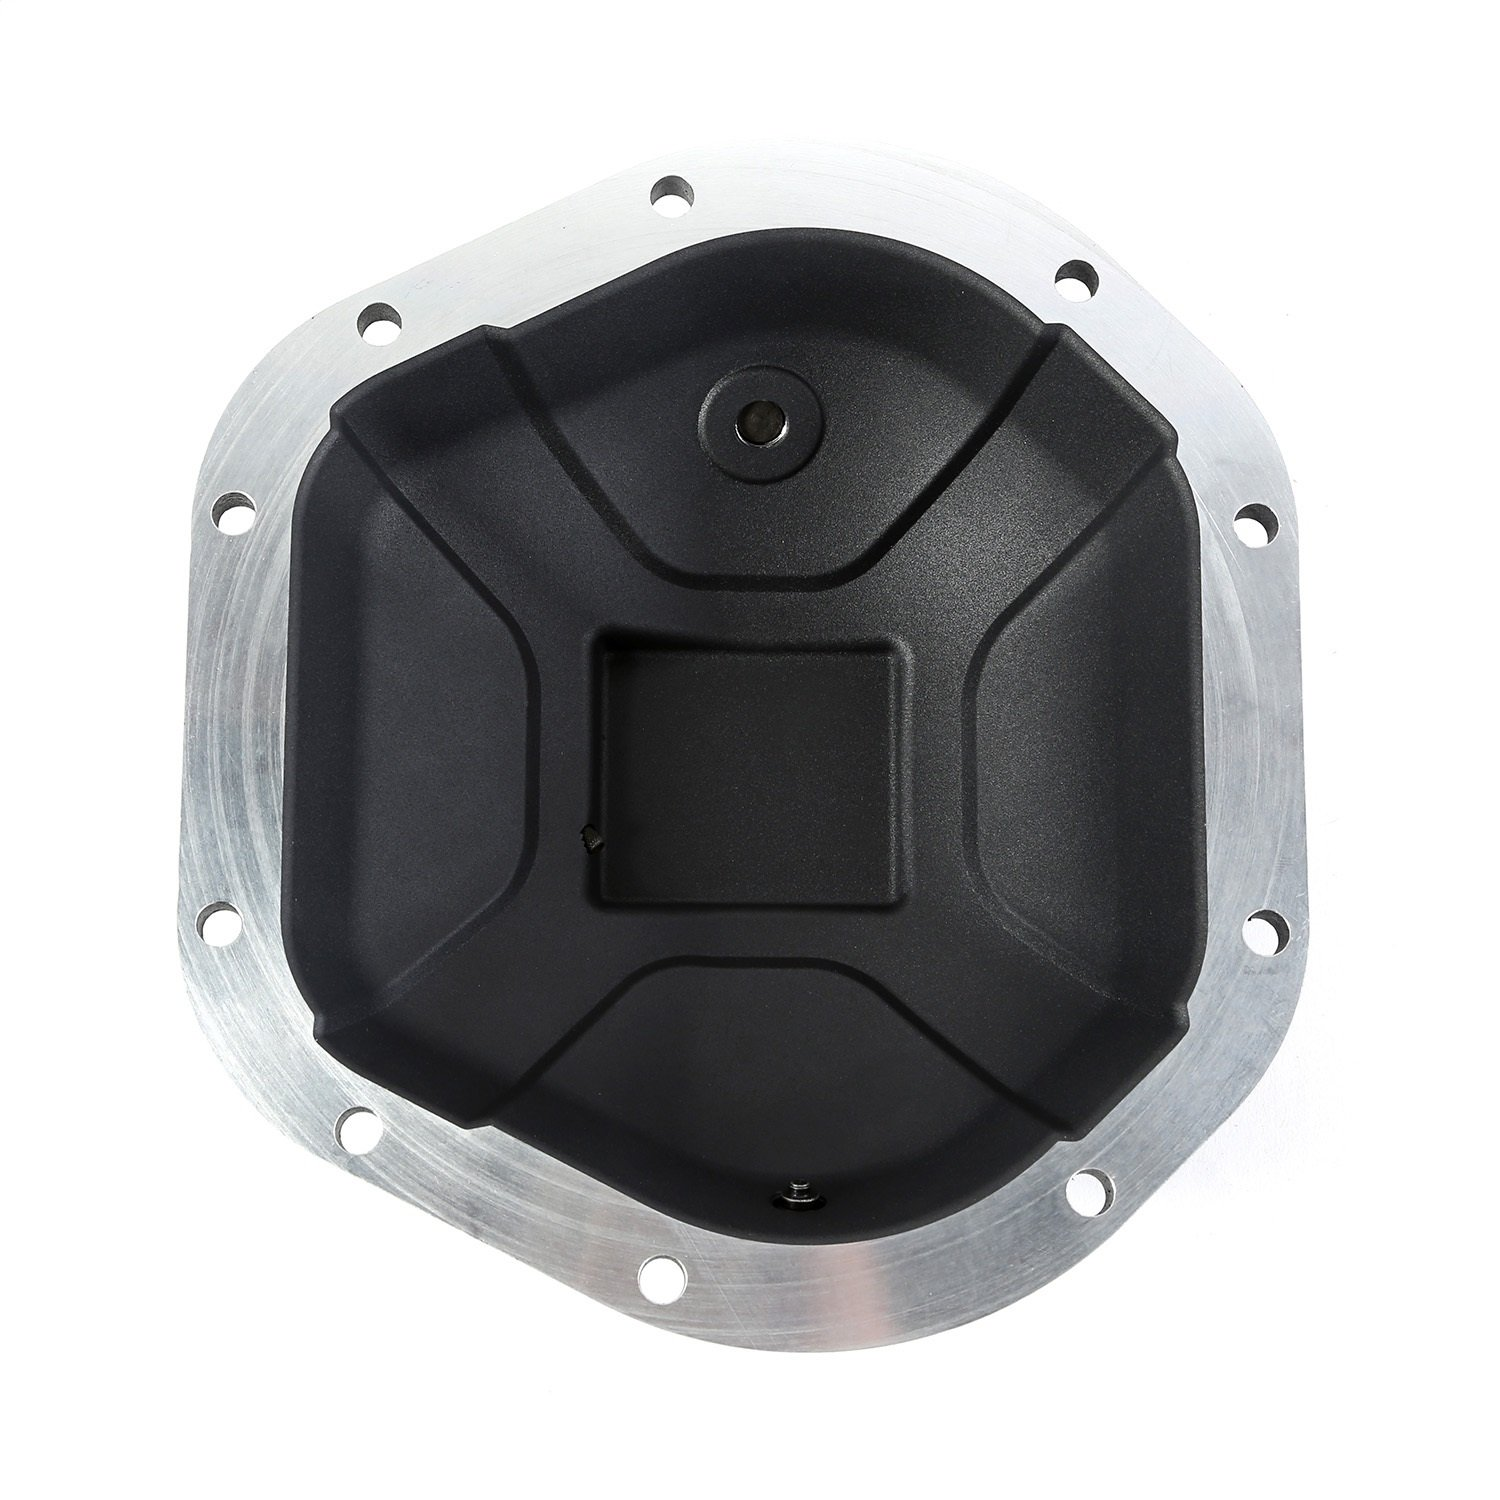 Rugged Ridge 16595.12 Black Boulder Aluminum Differential Cover for Dana 44